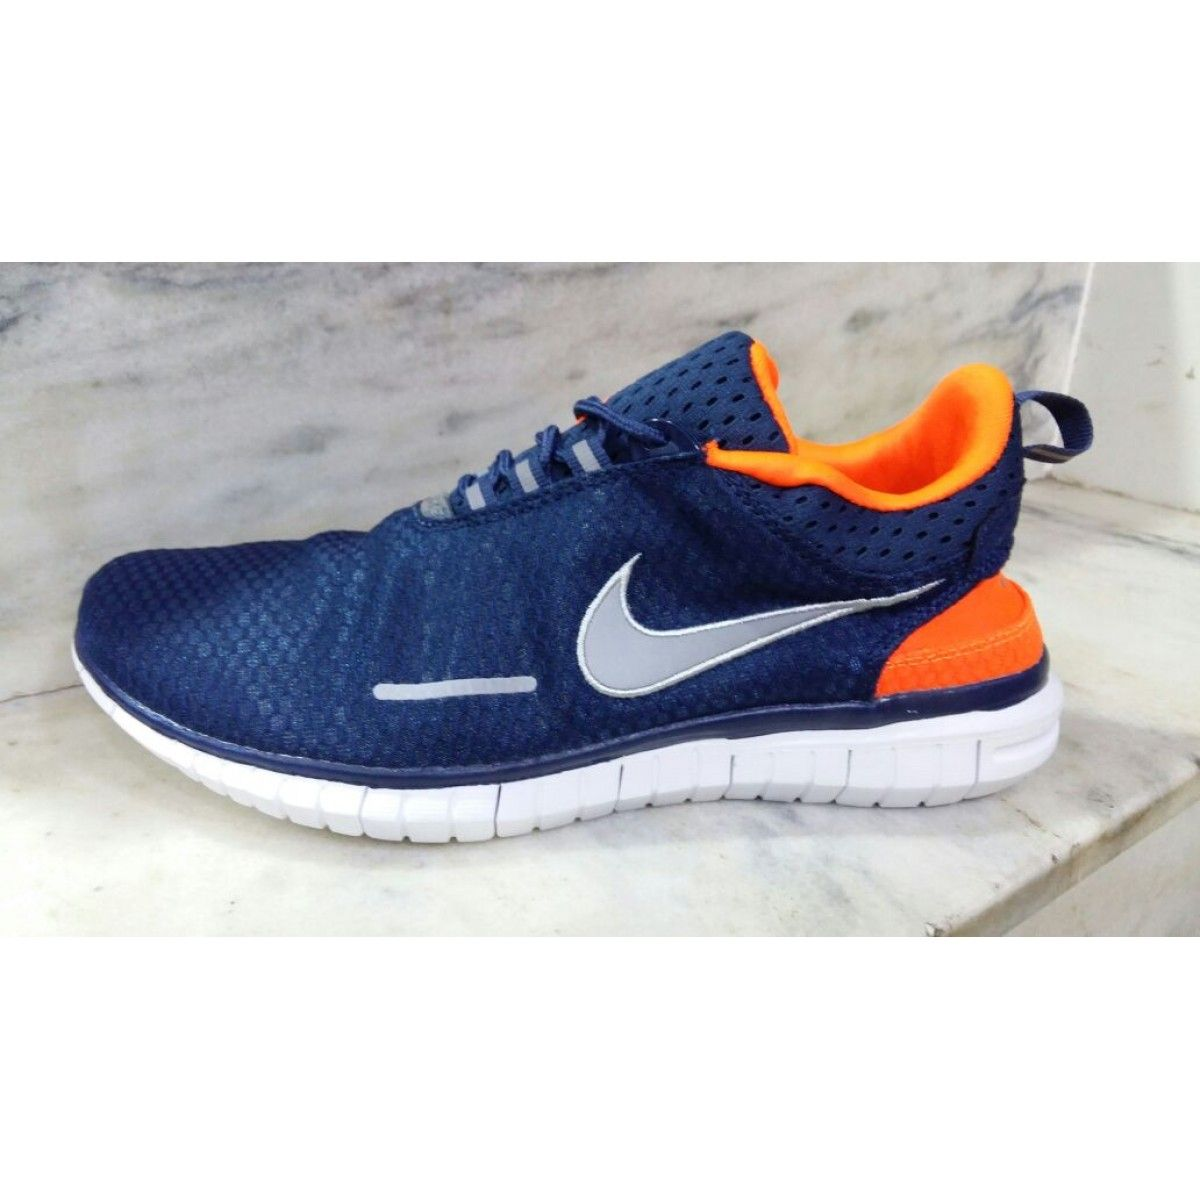 wholesale dealer cc4b8 42970 Nike Free Run OG Breathe Blue Orange Running Shoes